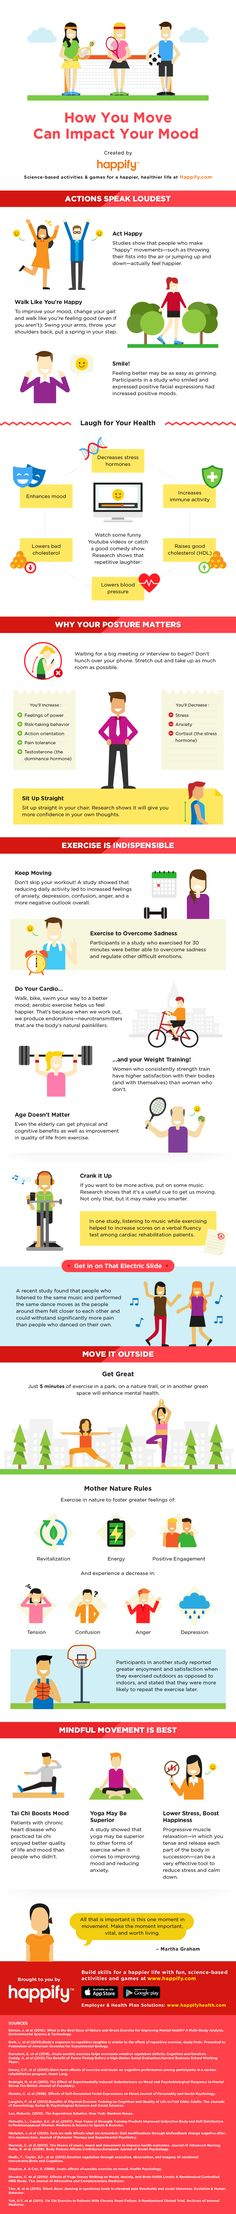 Happiness is a choice, starting with the way you move. Here's the science behind how exercise affects your outlook, and why you need to get moving to stay grooving.